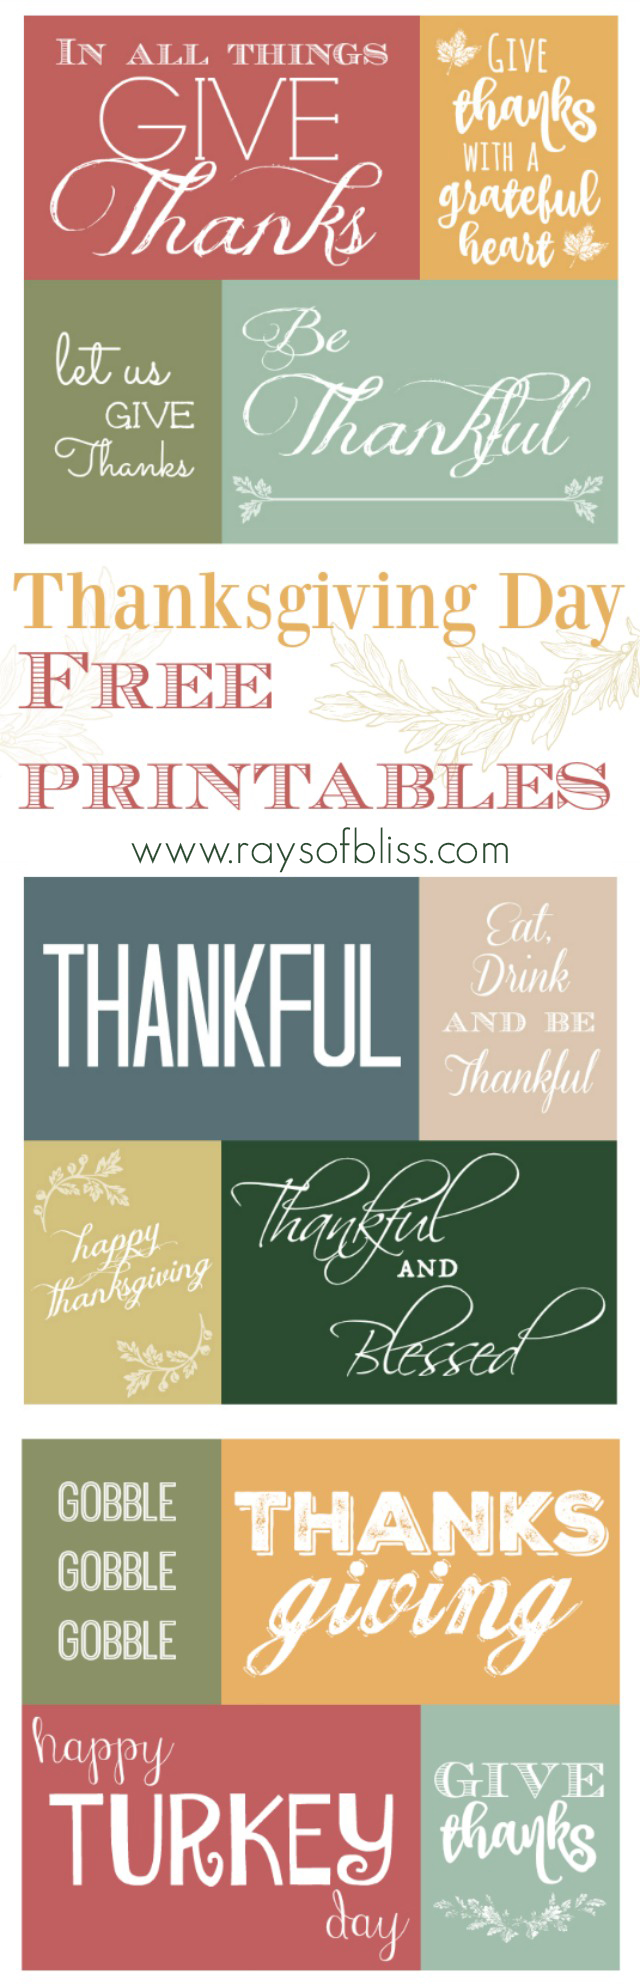 Thanksgiving Day Free Printable -Thankful Quotes - Rays of Bliss